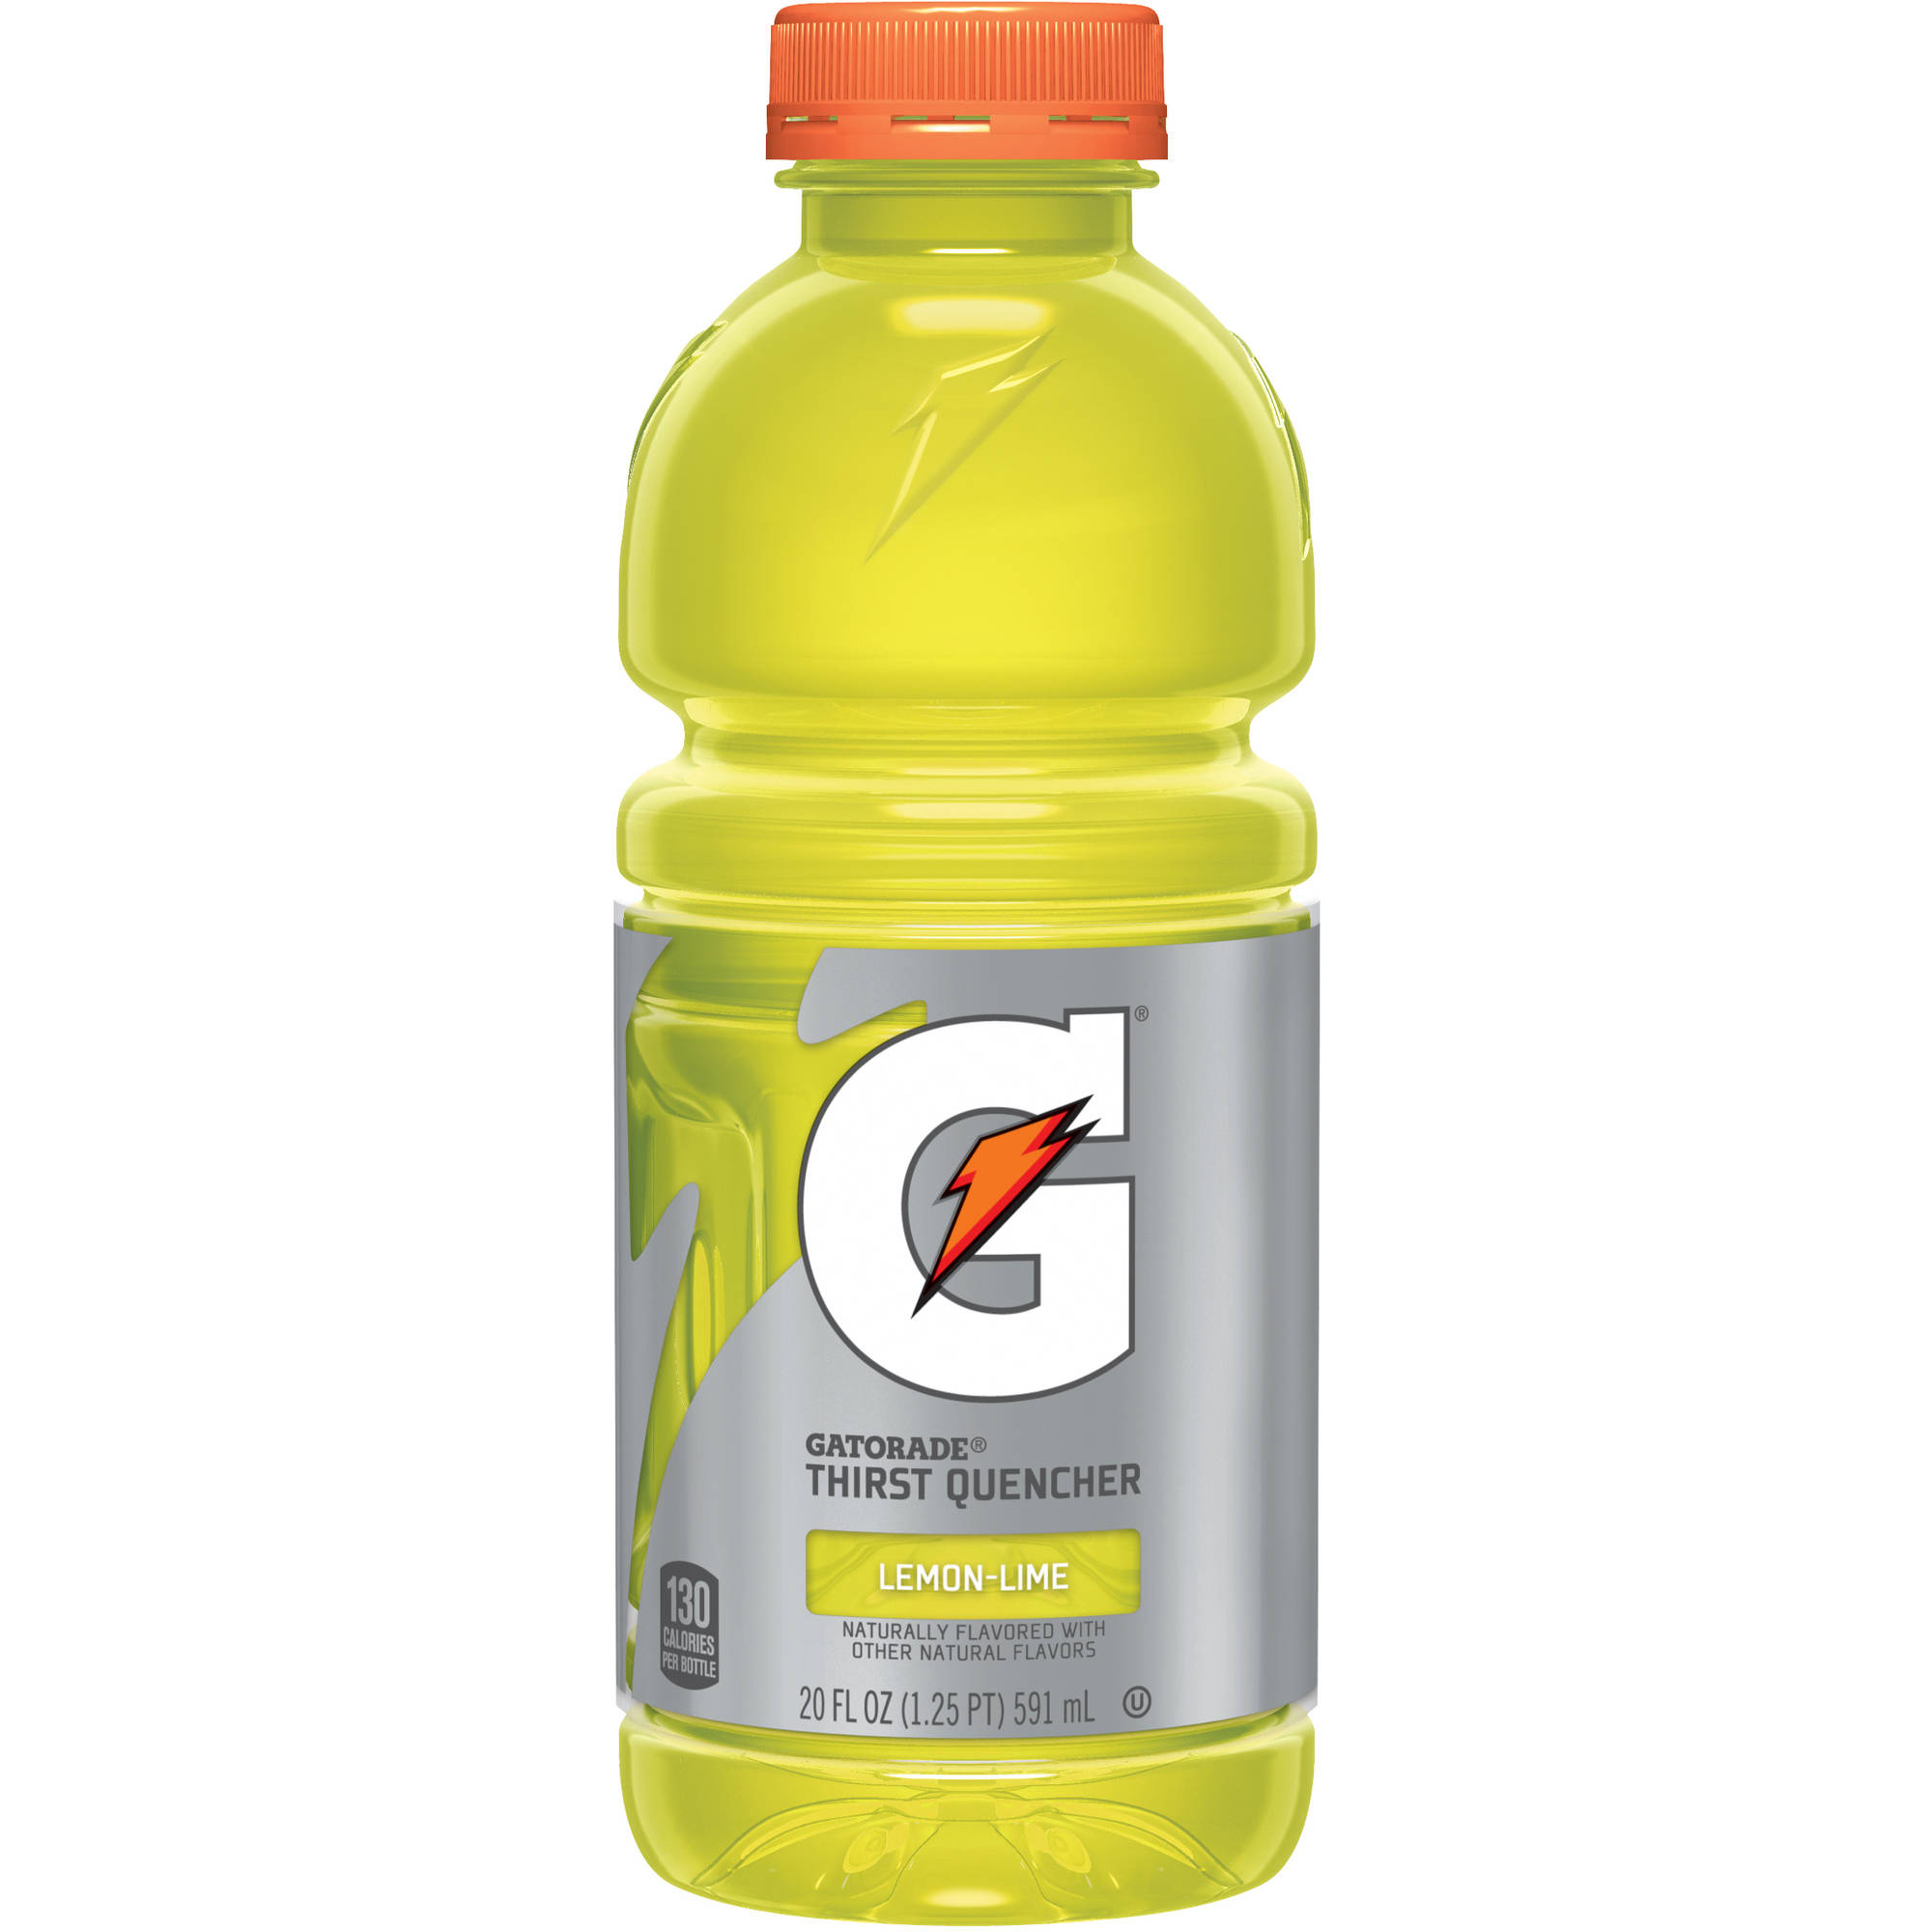 Gatorade G Lemon-Lime Thirst Quencher Sports Drink, 20 fl oz bottles